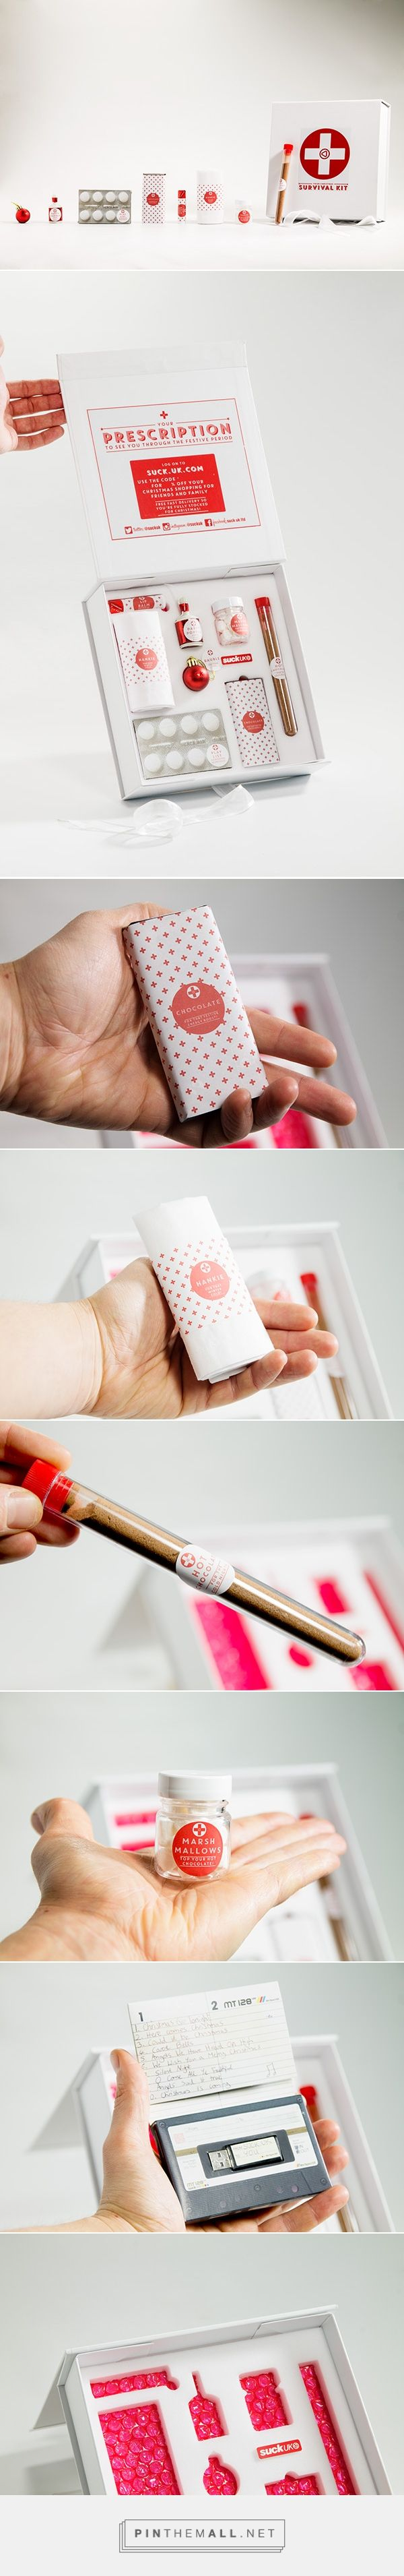 Christmas Survival Kit packaging on Behance by Suck UK, London, United Kingdom curated by Packaging Diva PD. Who couldn't use a little Christmas survival cheer? We wanted to send a little package of TLC to some of our retailers going into the busy month of December.